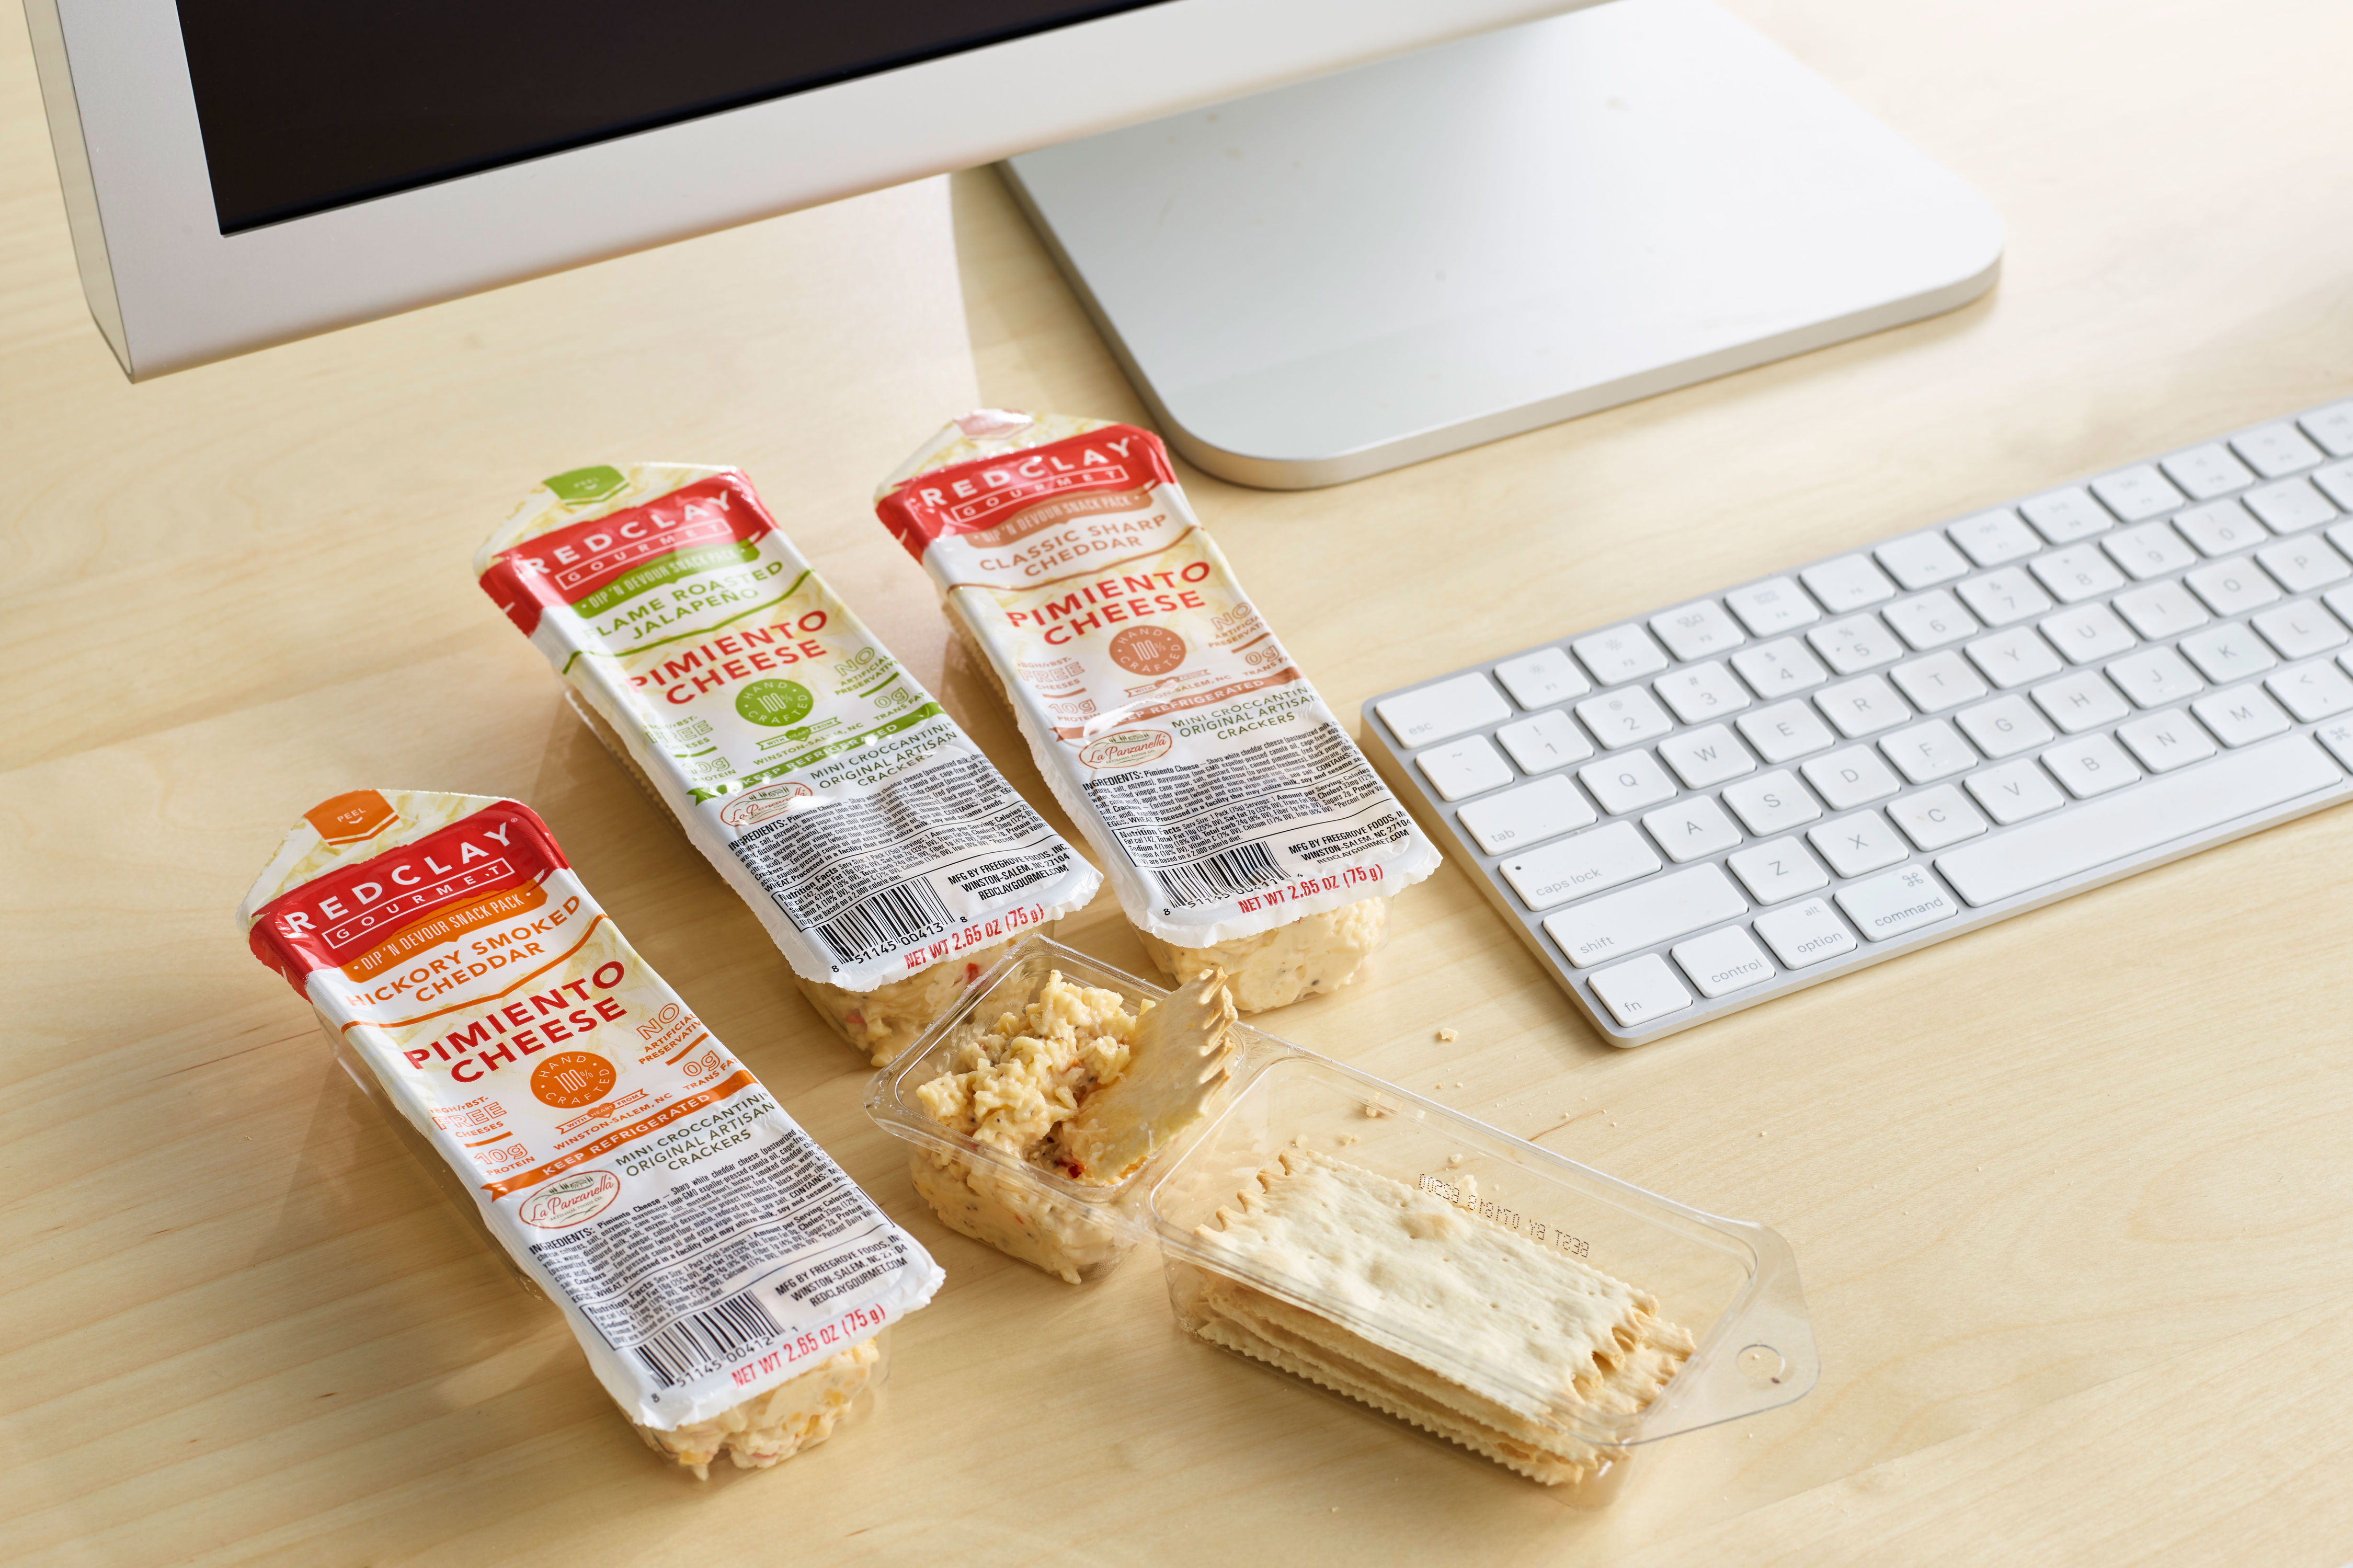 Why The Pimiento Cheese Snack Pack Is A Must-Have For Summer